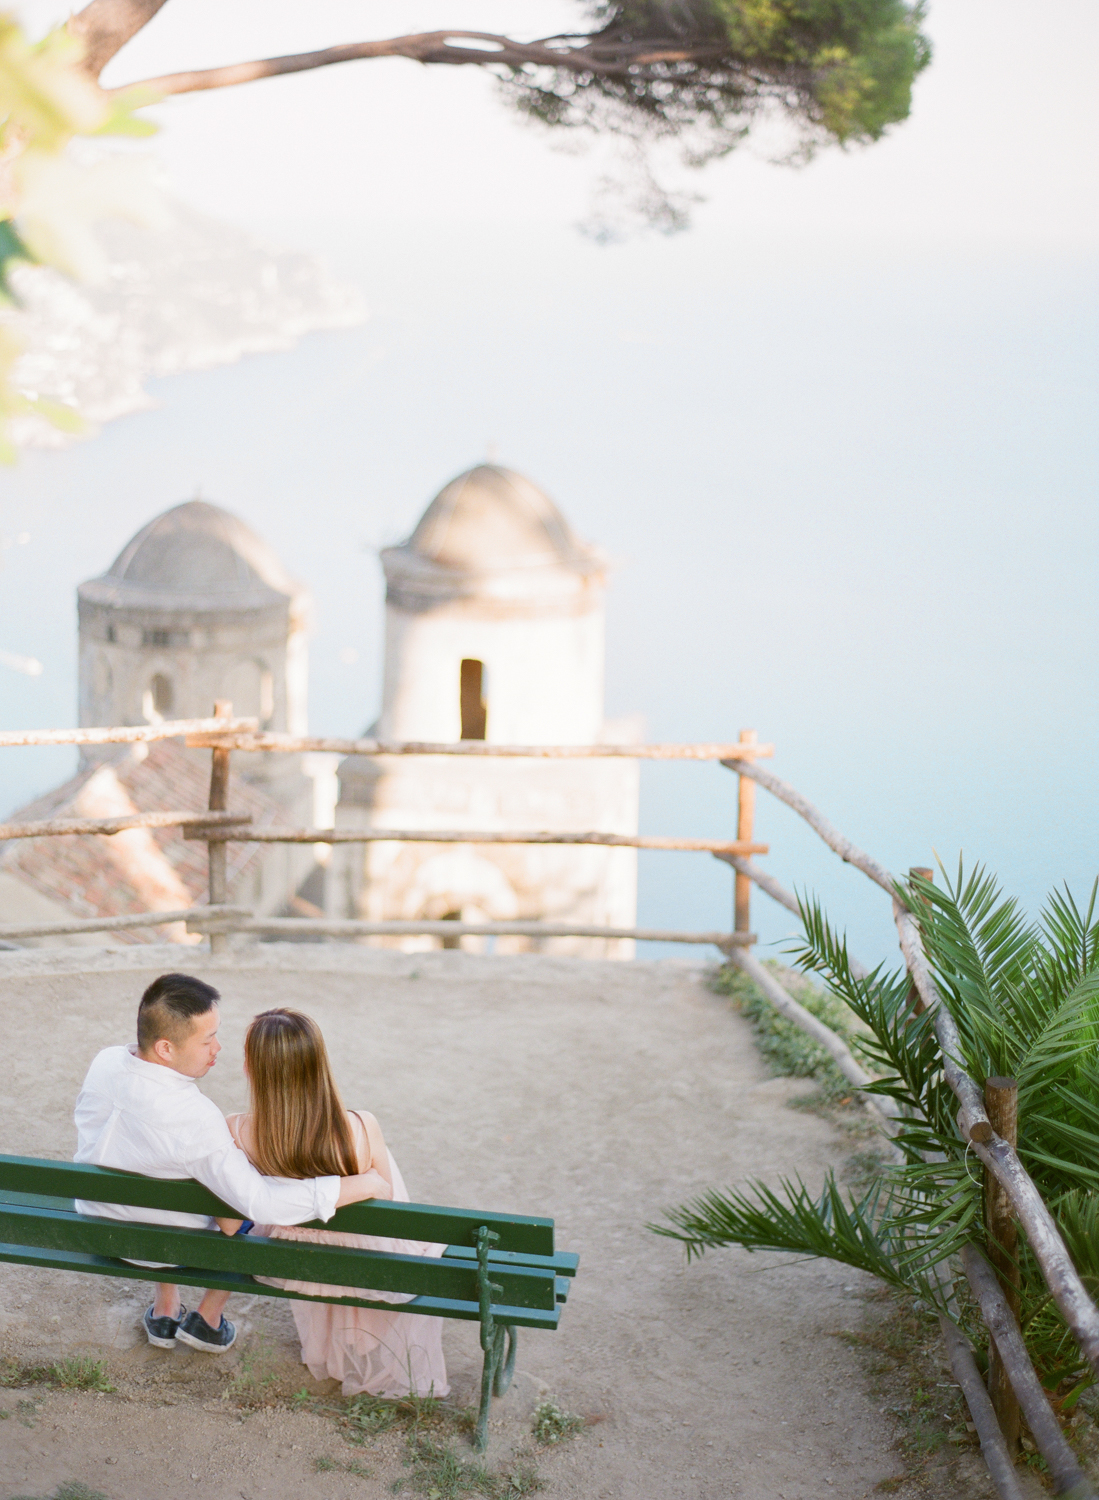 ravello wedding photographer amalfi coast wedding nikol bodnarova film wedding photographer_19.JPG